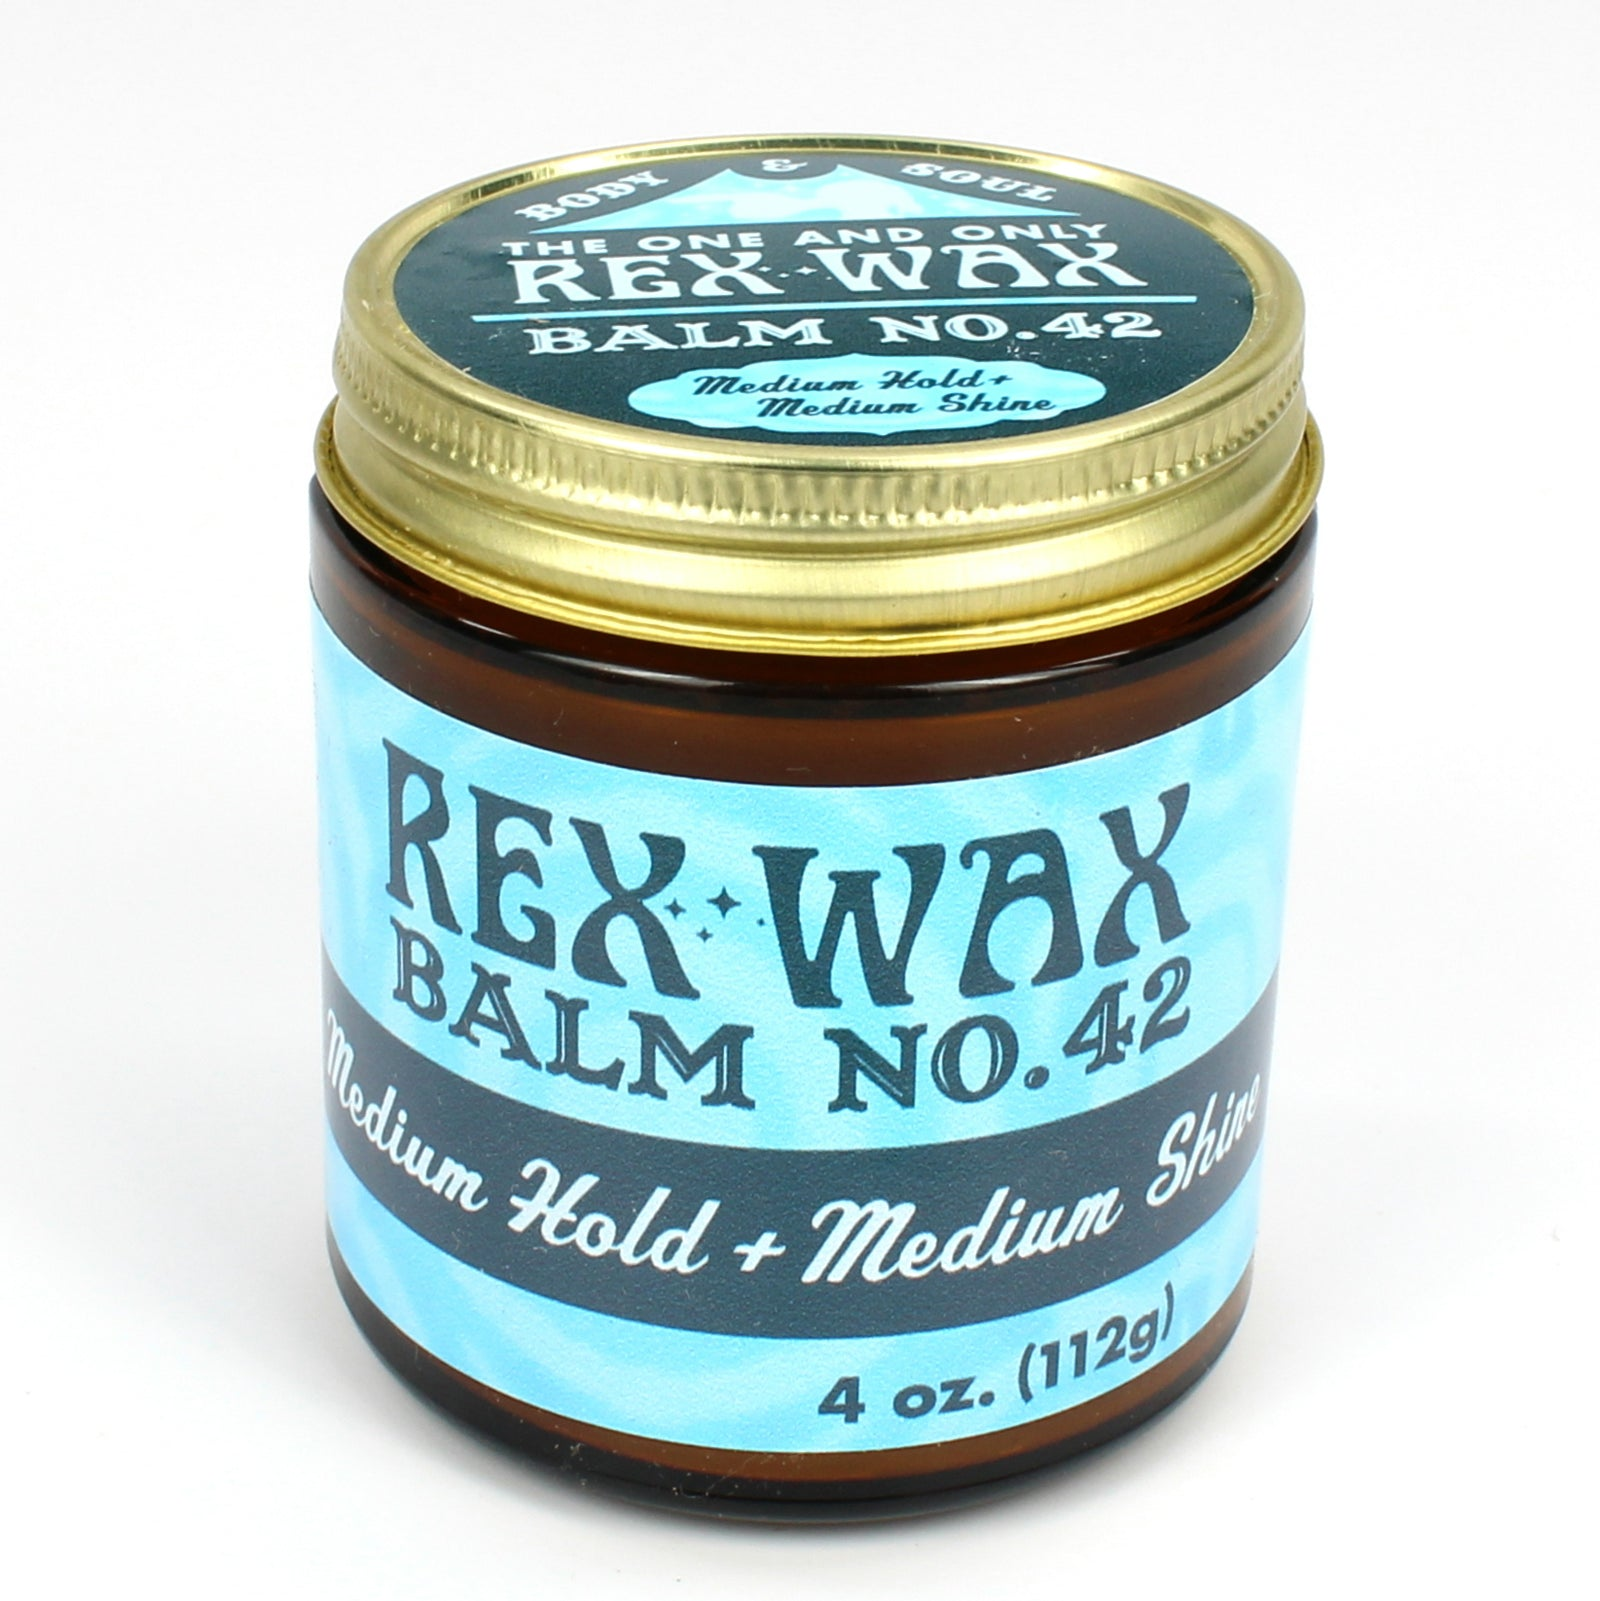 Rex Wax - Balm No.  42 Medium Hold Medium Shine 4oz Pomade